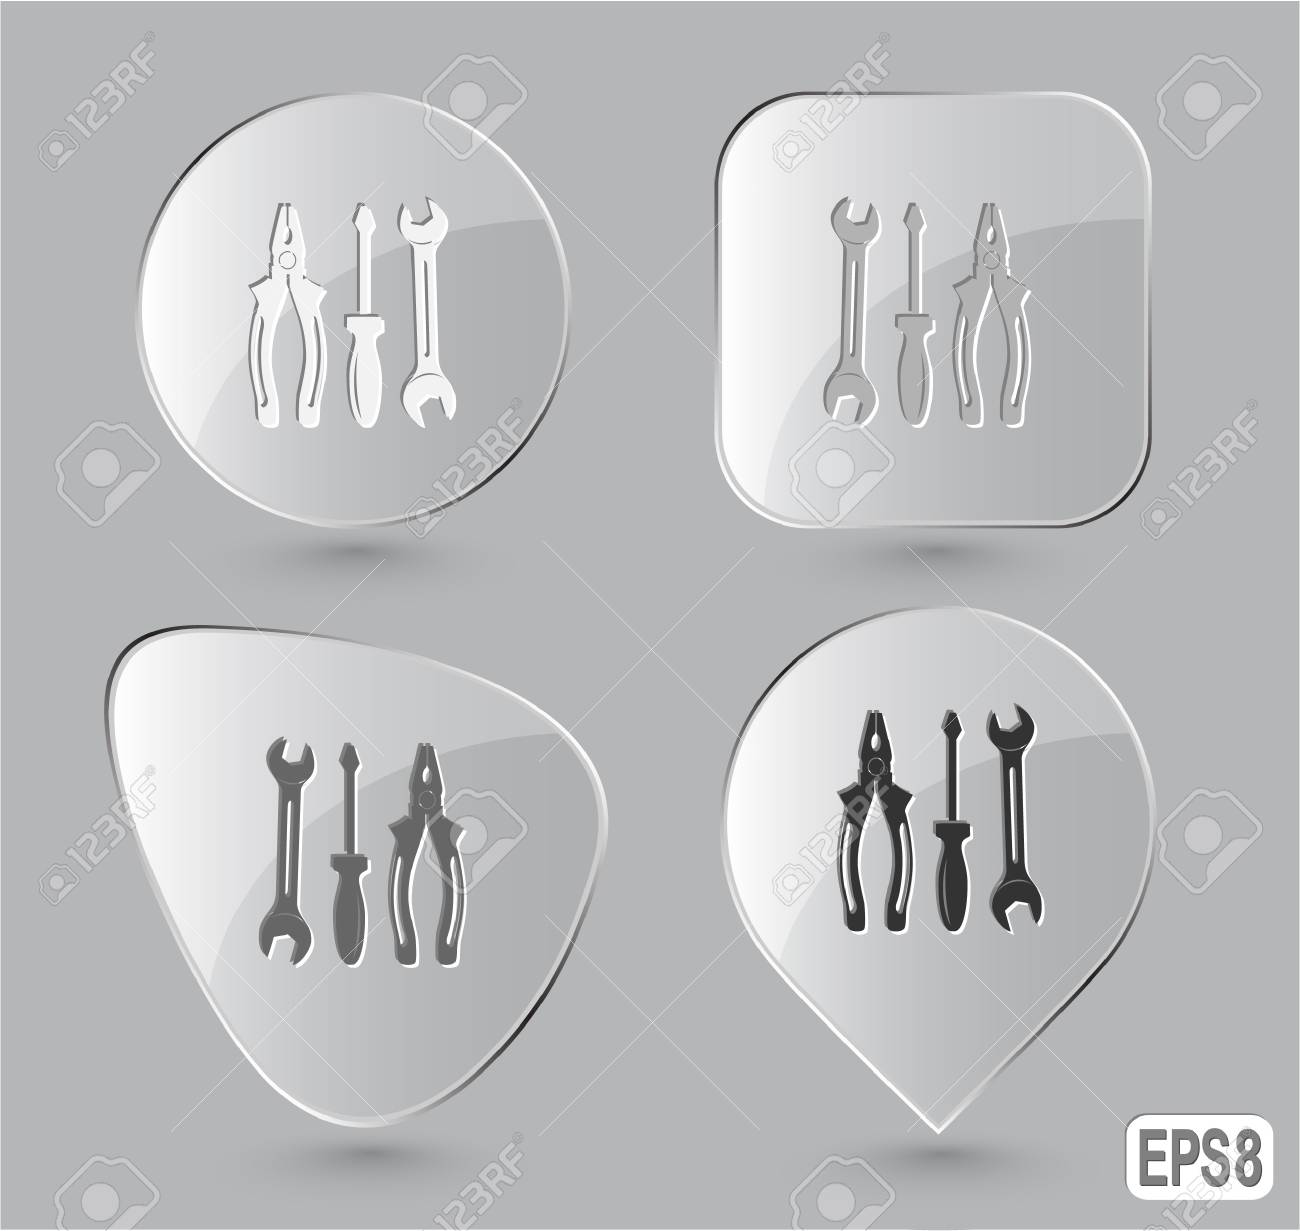 Tools. Glass buttons. Vector illustration. Stock Illustration - 17388716